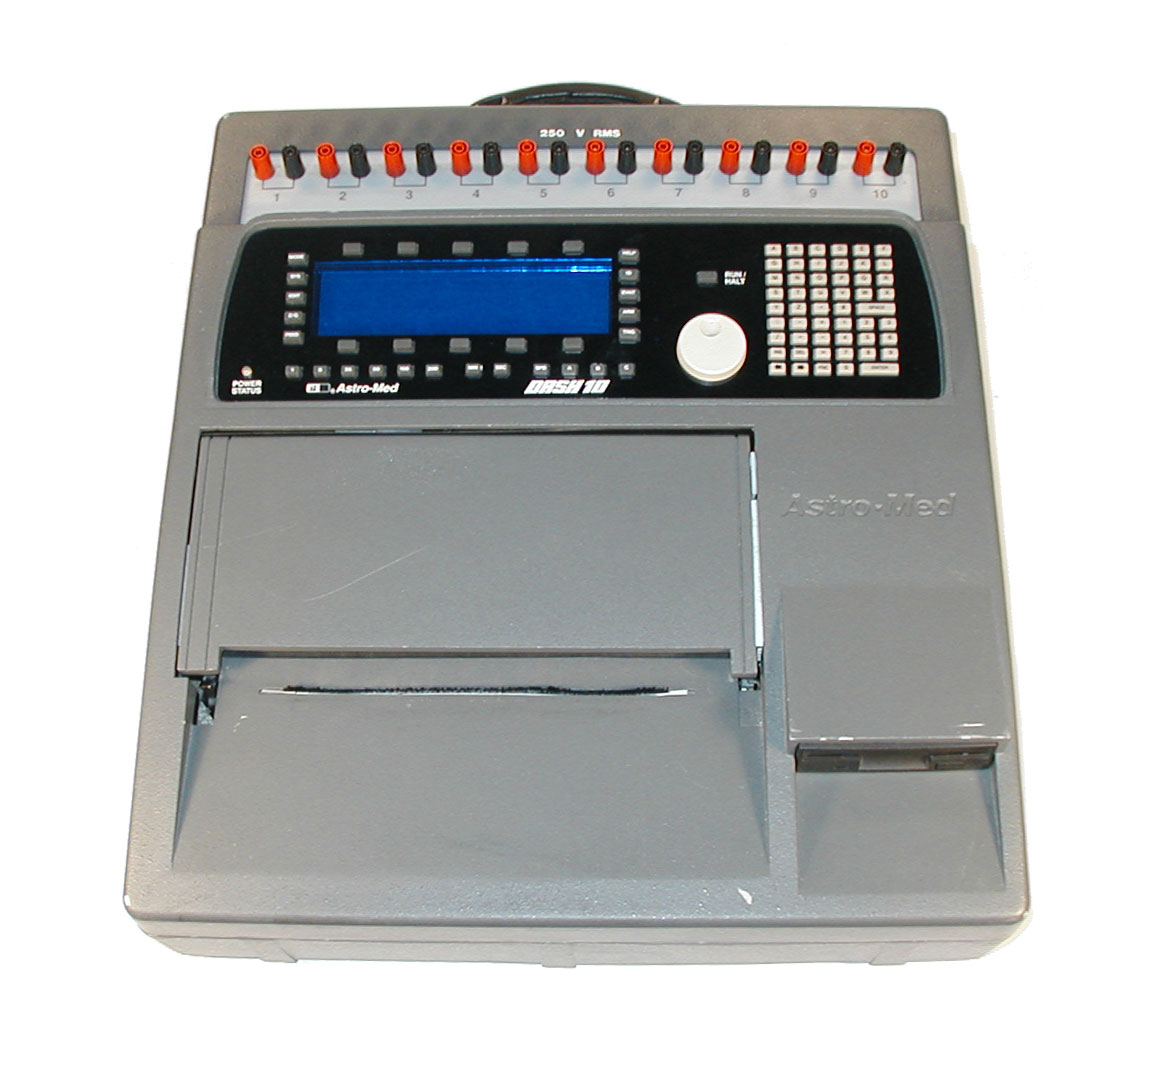 Astro-Med Dash 10 Ten Channel Thermal Chart Recorder